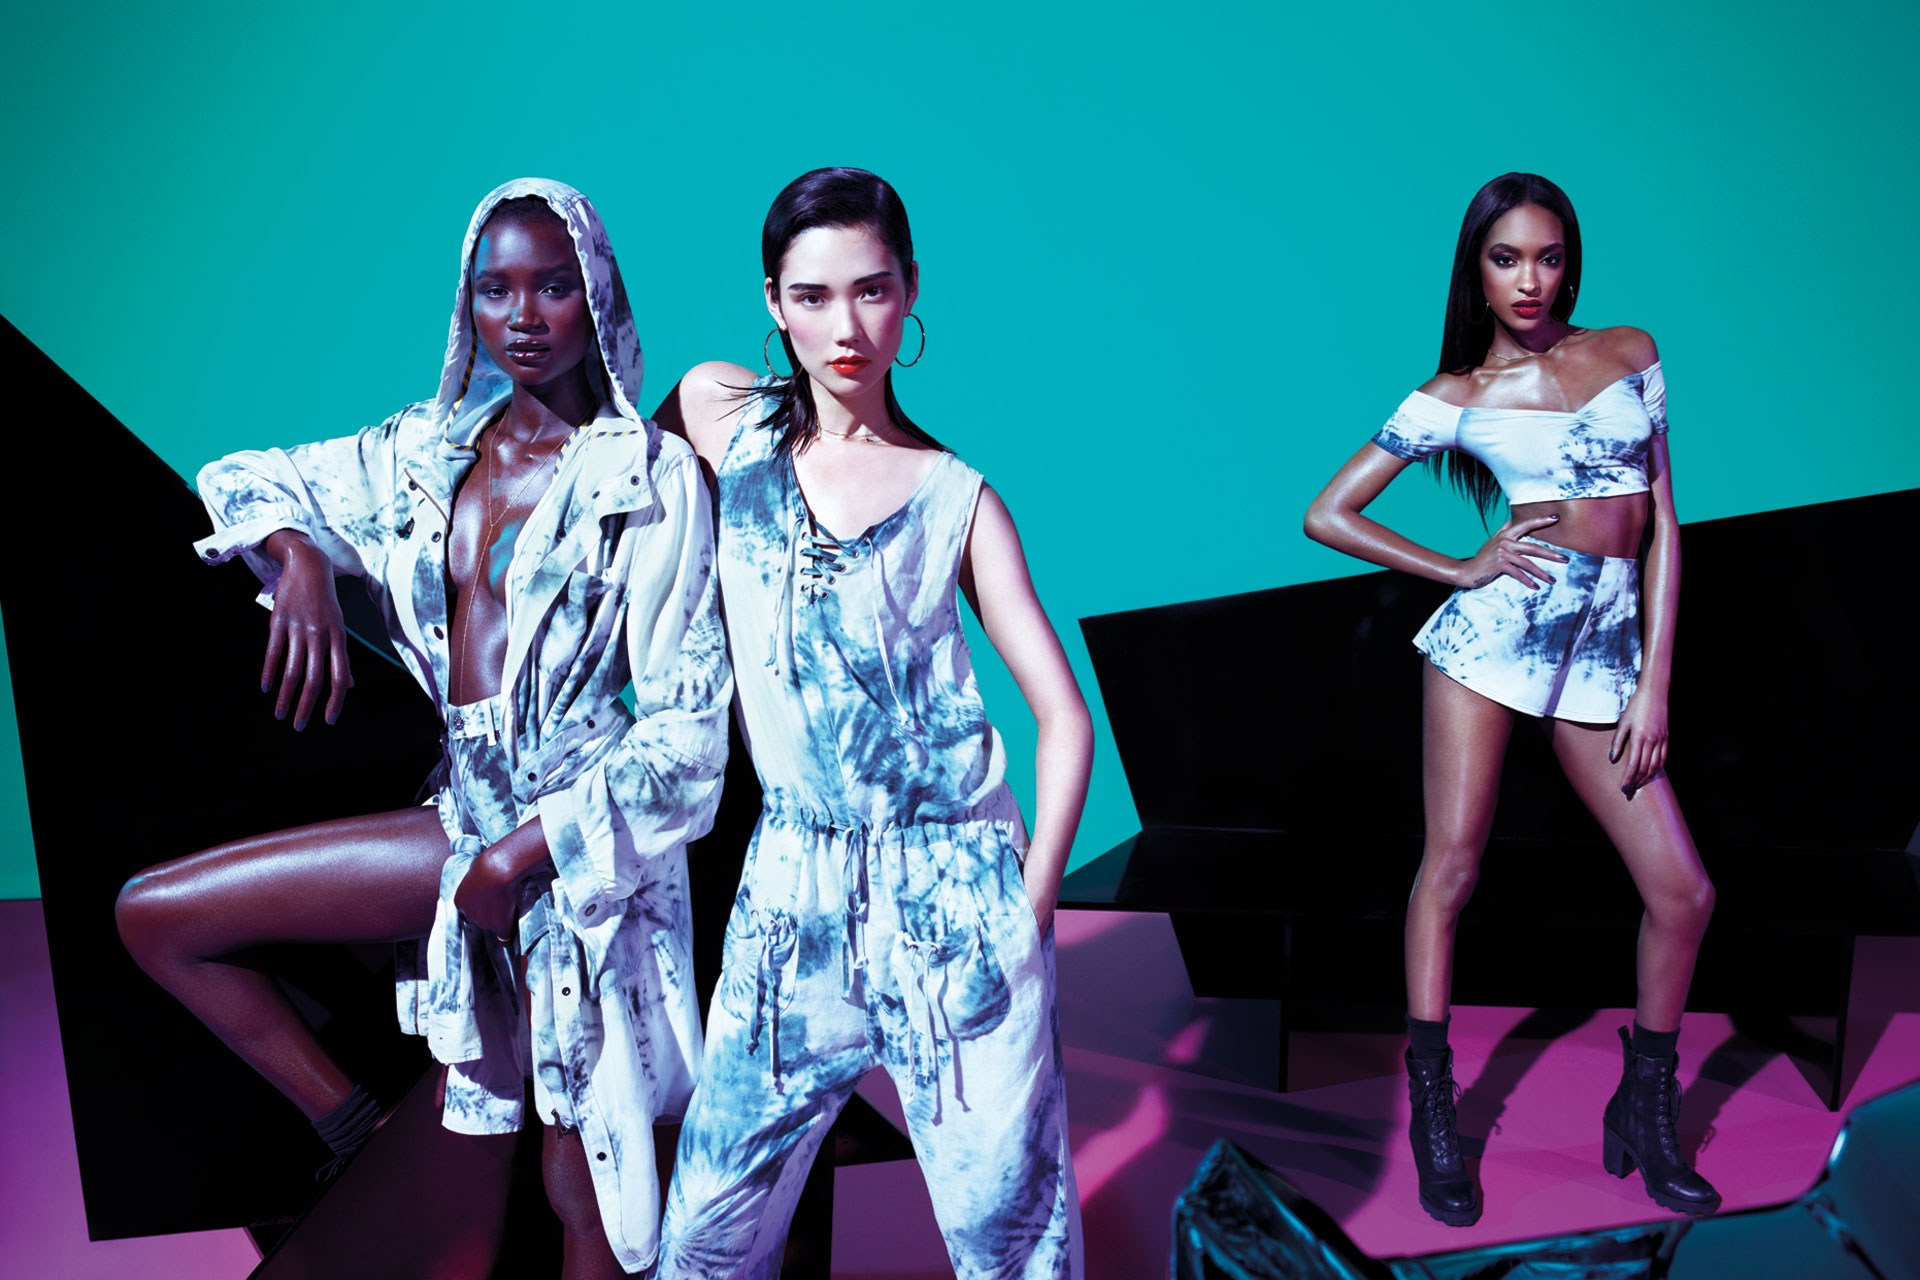 river island rihanna2 Jourdan Dunn, Tao Okamoto, Bambi Northwood Blyth and Ataui Deng Star in Rihanna for River Island Summer 2013 Campaign